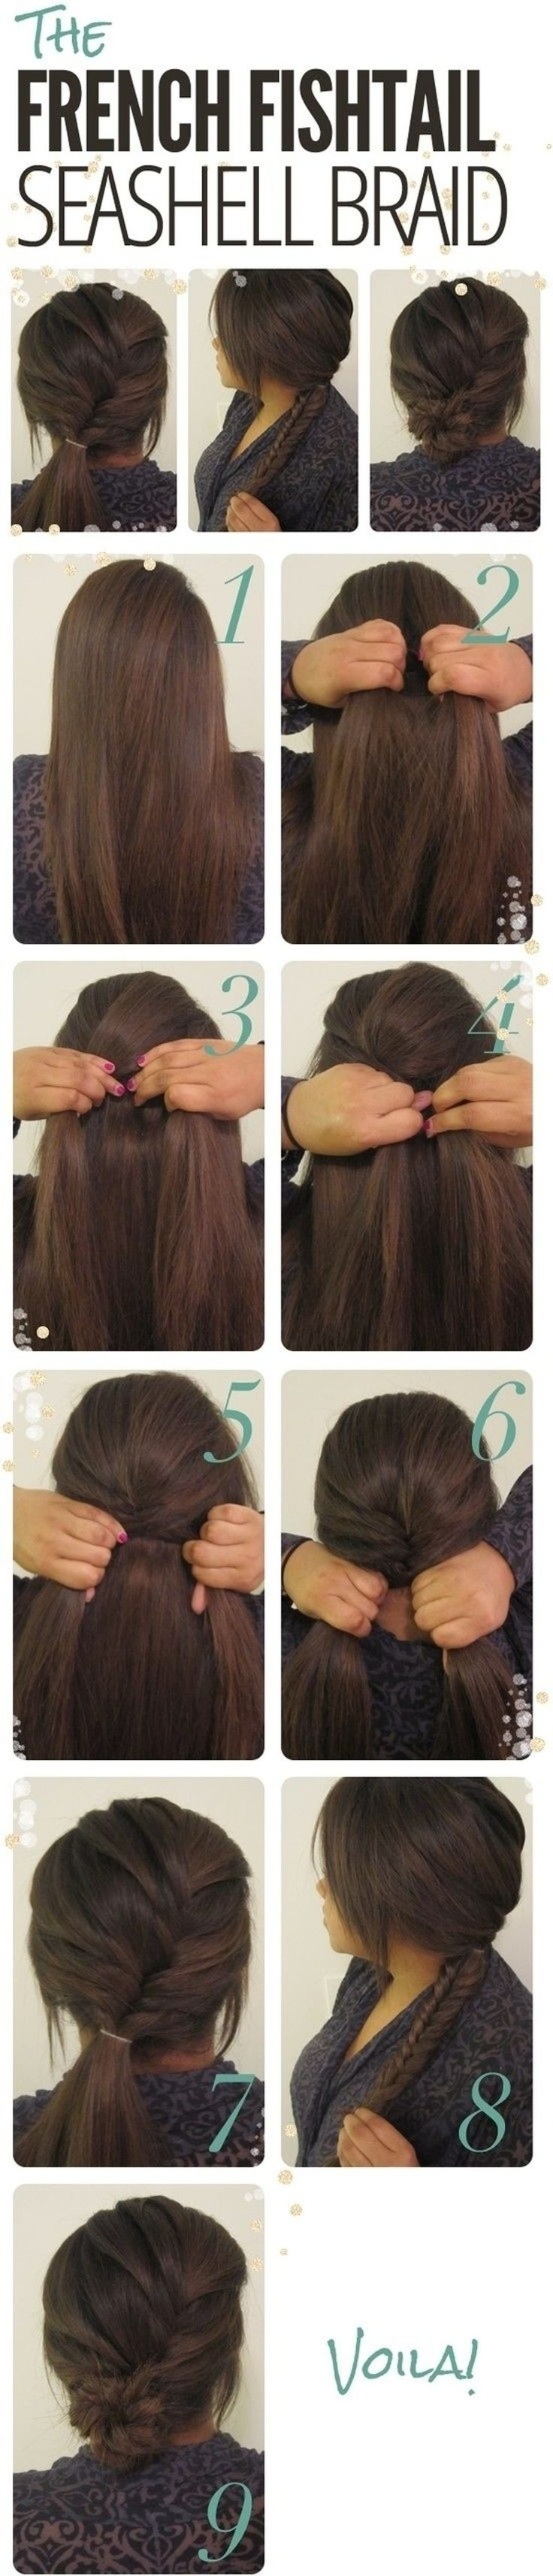 16. #French Fishtail #Seashell Braid - 43 #Fancy Braided #Hairstyle Ideas from #Pinterest ... → Hair #Cover